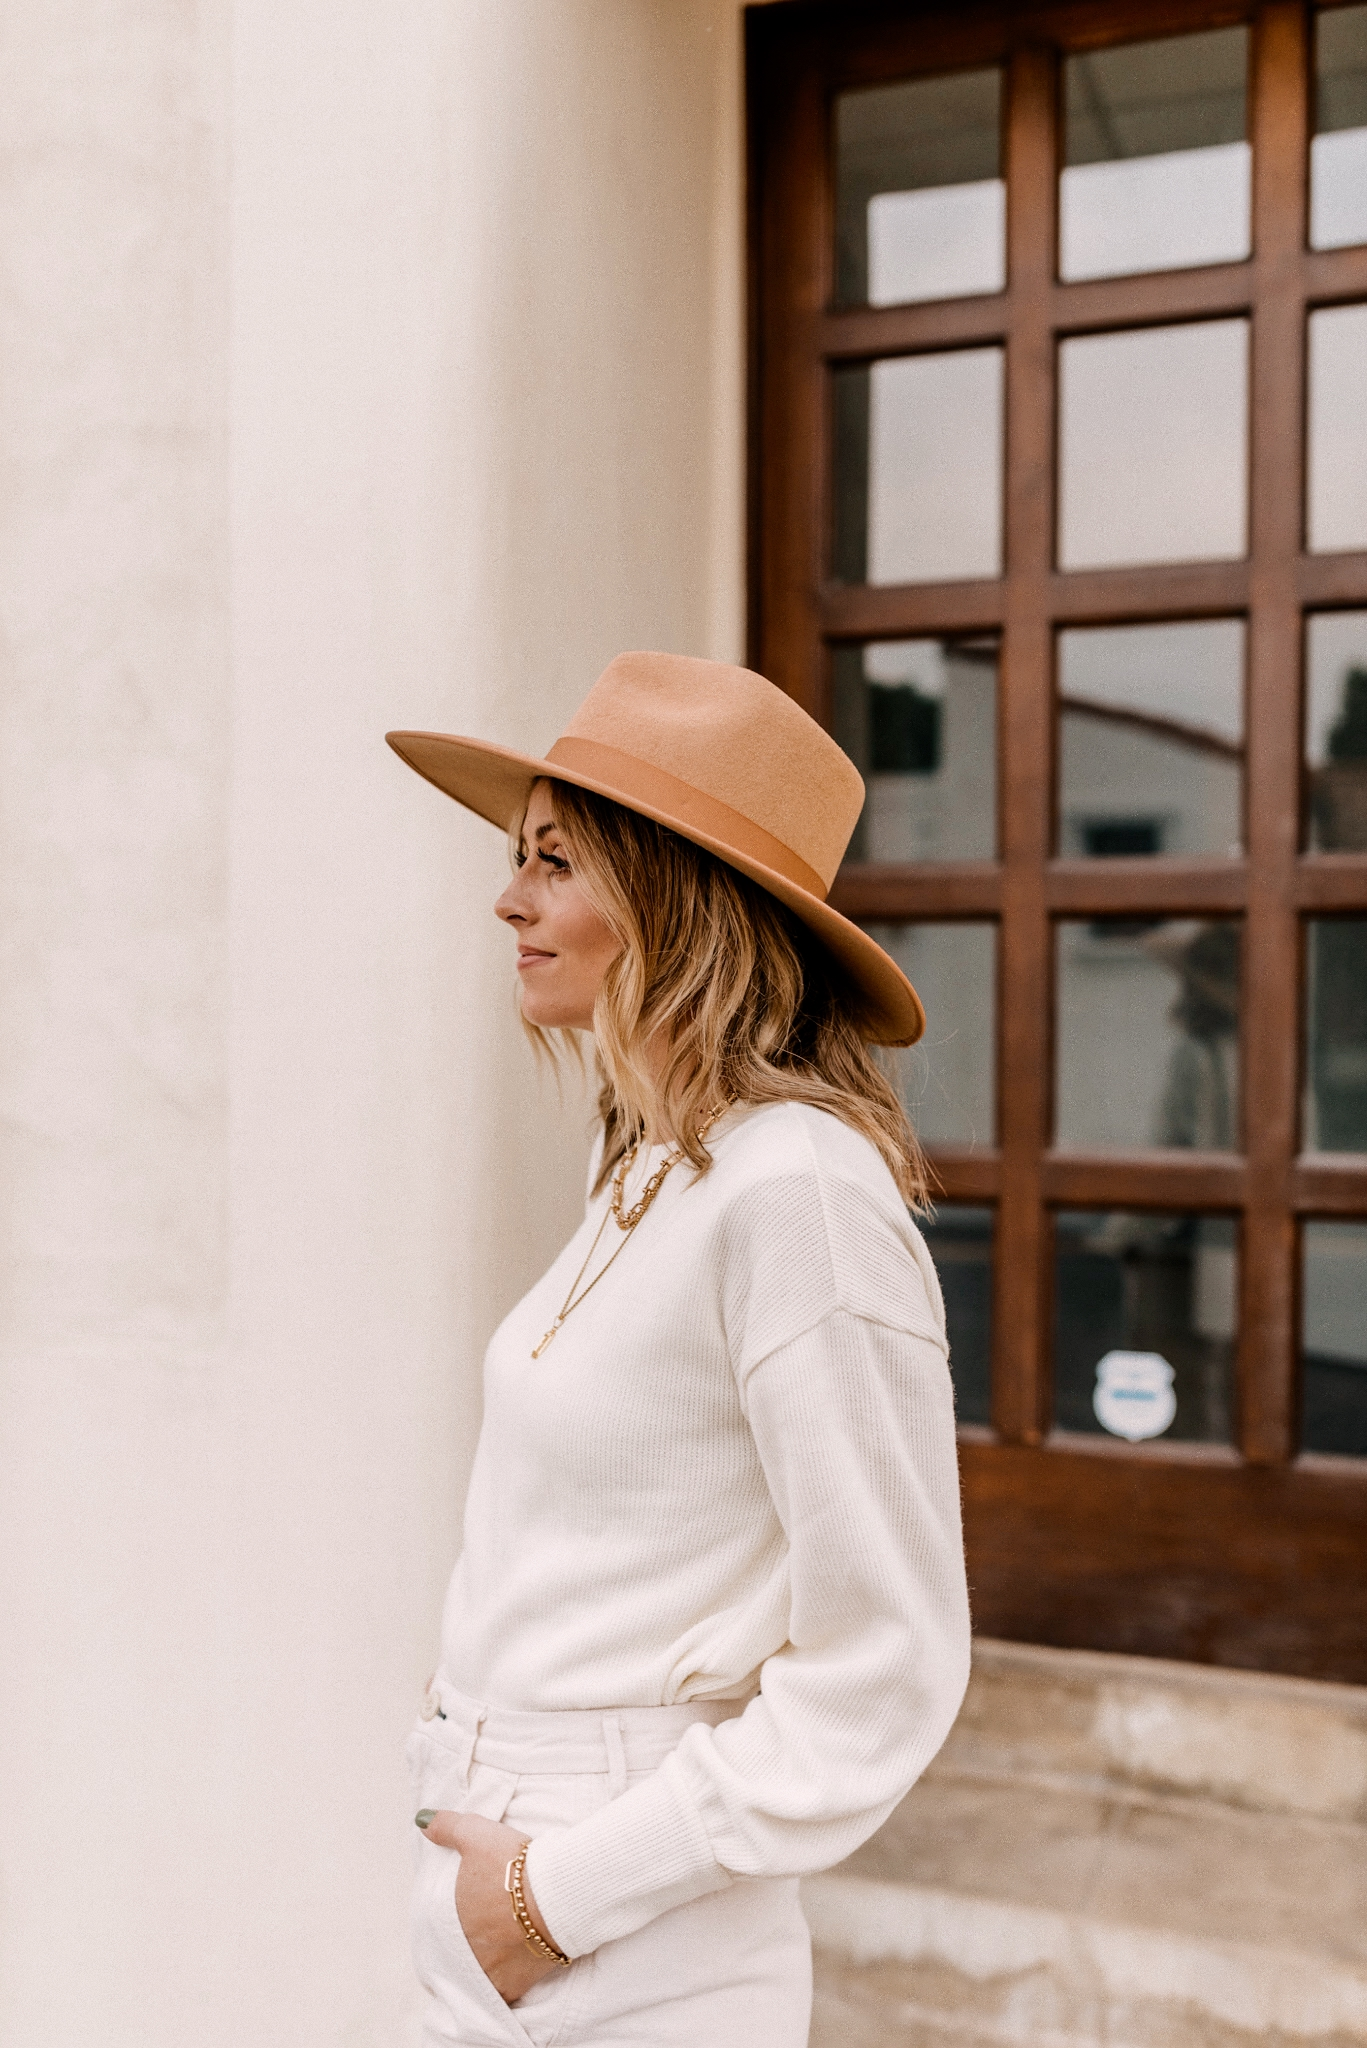 Fall fedora Hats |Fall fedora Hats | Fedora Hats by popular San Diego fashion blog, Navy Grace: image of a woman wearing a Madewell Brushed Knit Puff-Sleeve Top, Everlane The Arc Canvas Pant,Gucci Women's Jordaan GG Canvas Loafers and Free People Rancher Felt Hat.